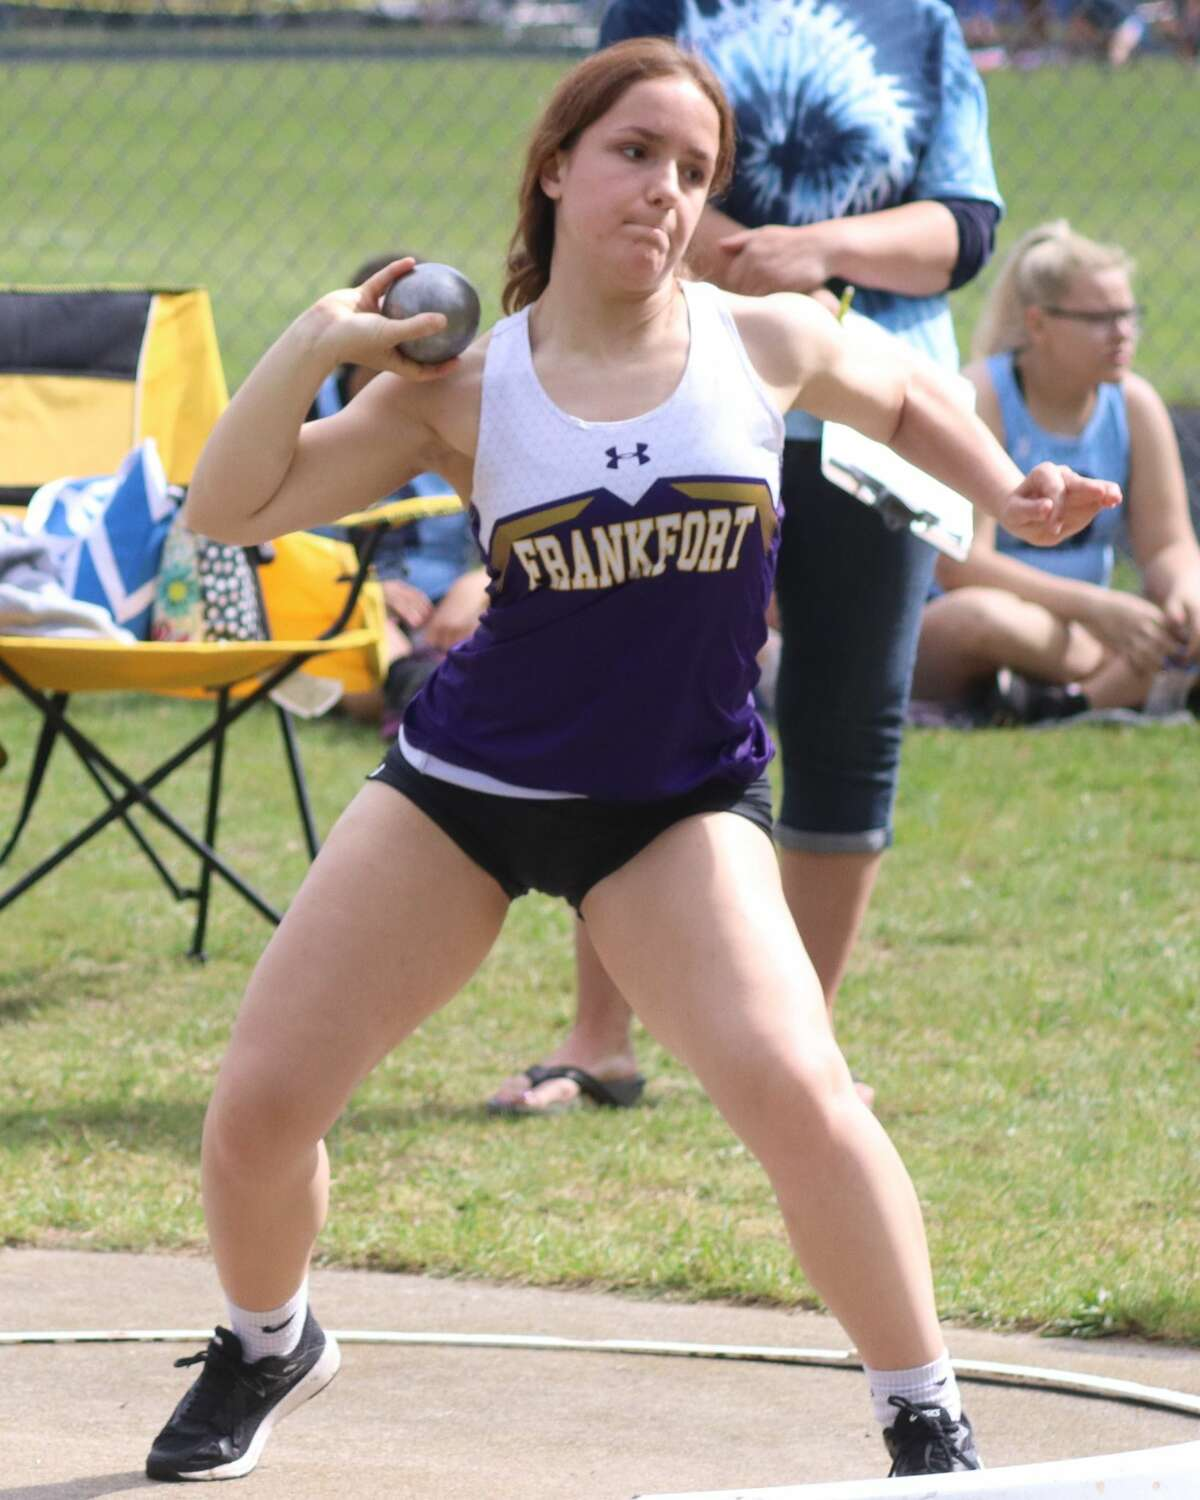 Frankfort's girls track and field team competes at regionals on May 22 at Brethren.